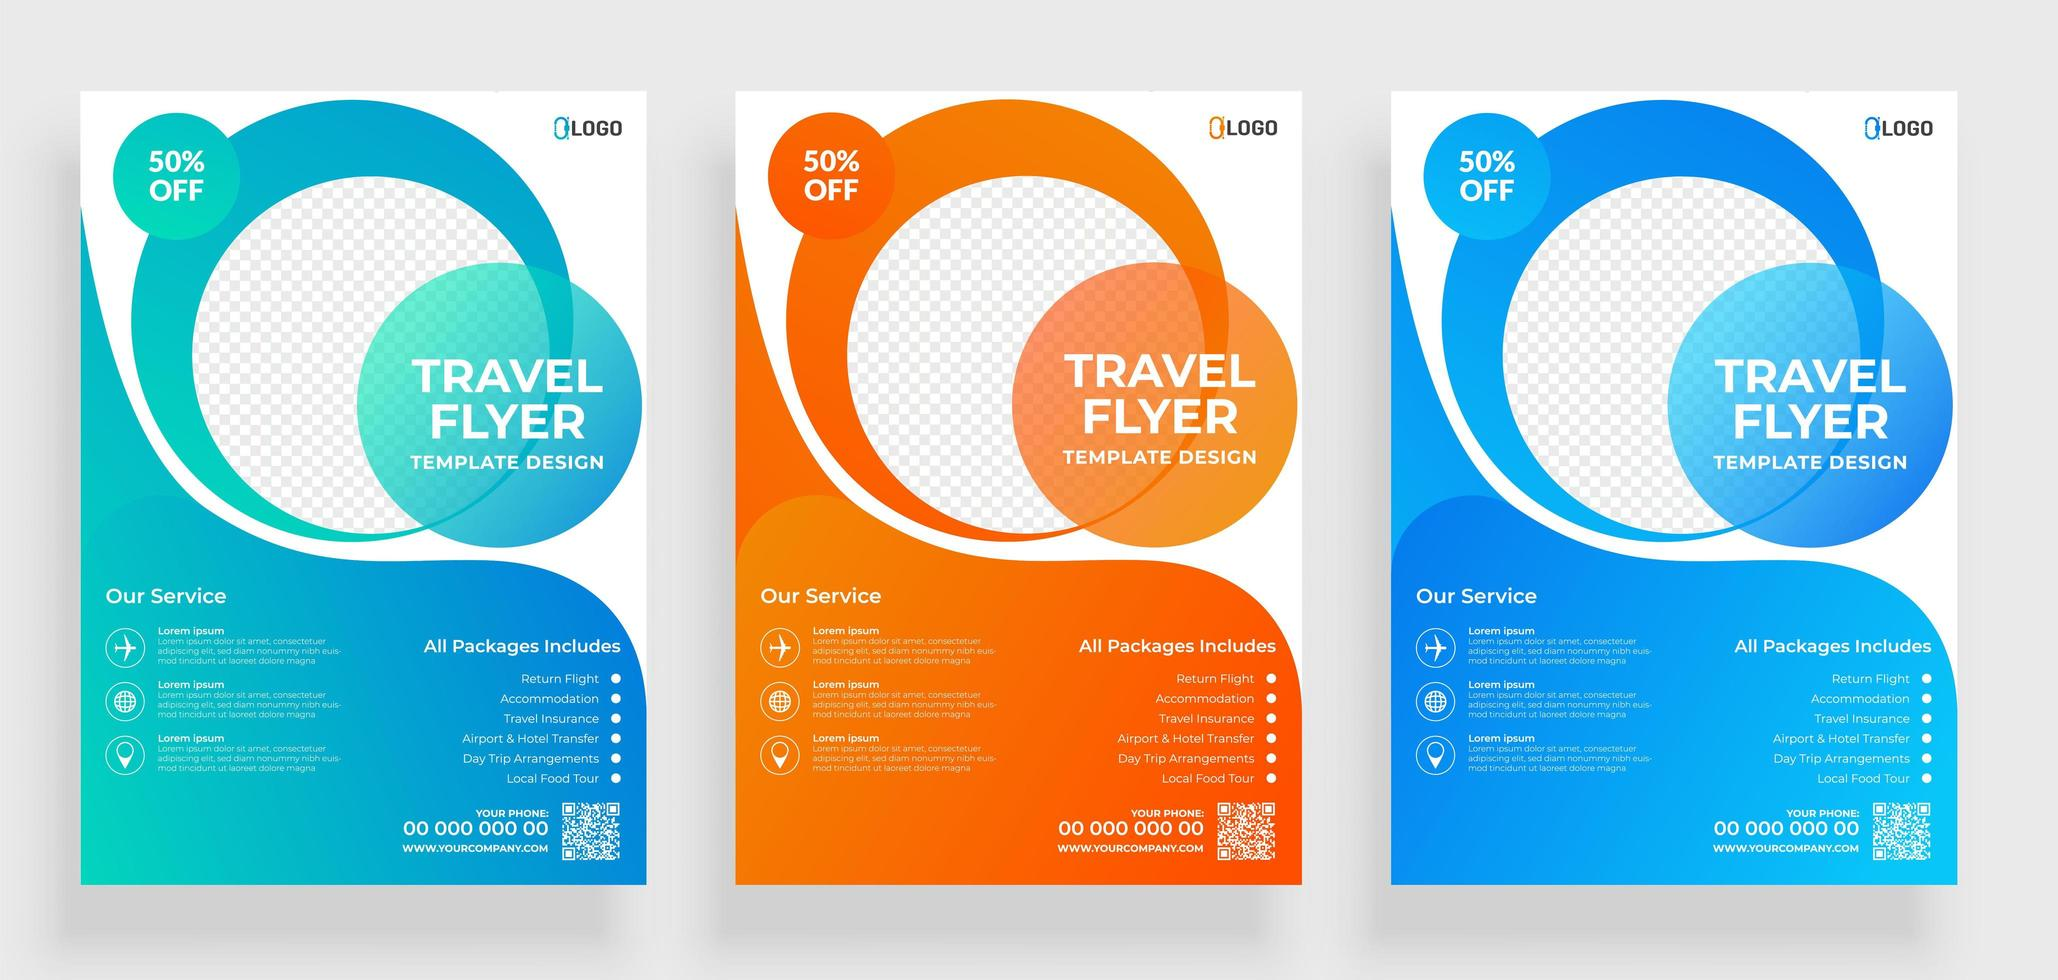 Travel Flyer Templates with Transparent Round Shapes  vector